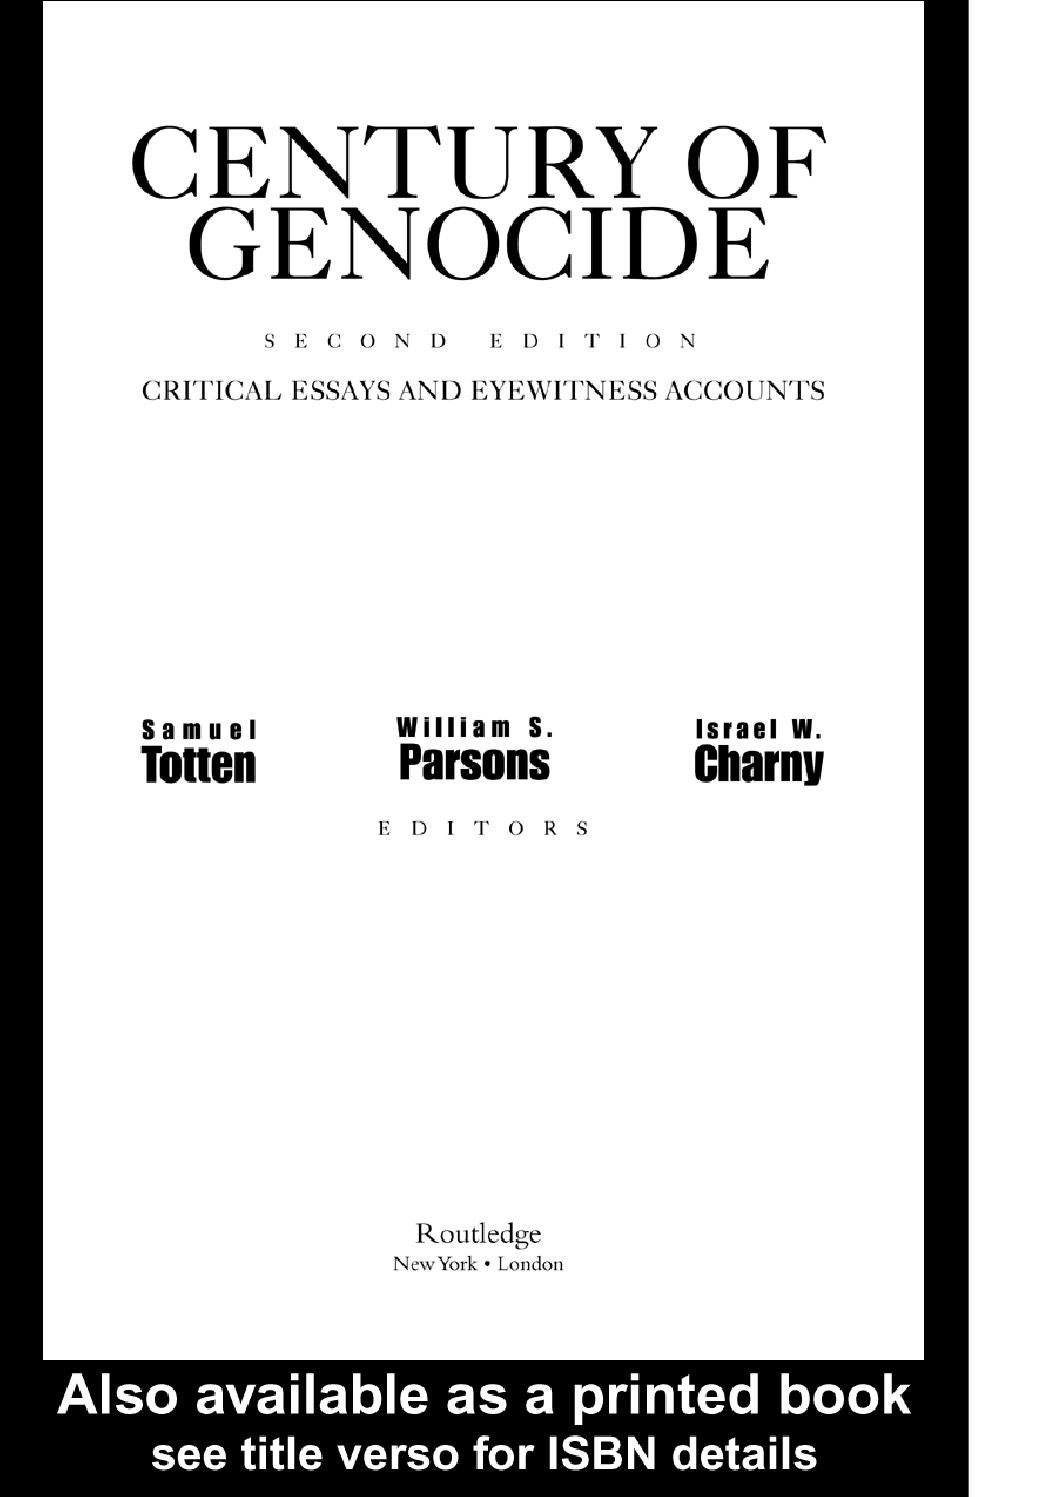 essays on genocide centuries of genocide essays and eyewitness  century of genocide critical esssesy and eyewitness accounts by century of genocide critical esssesy and eyewitness